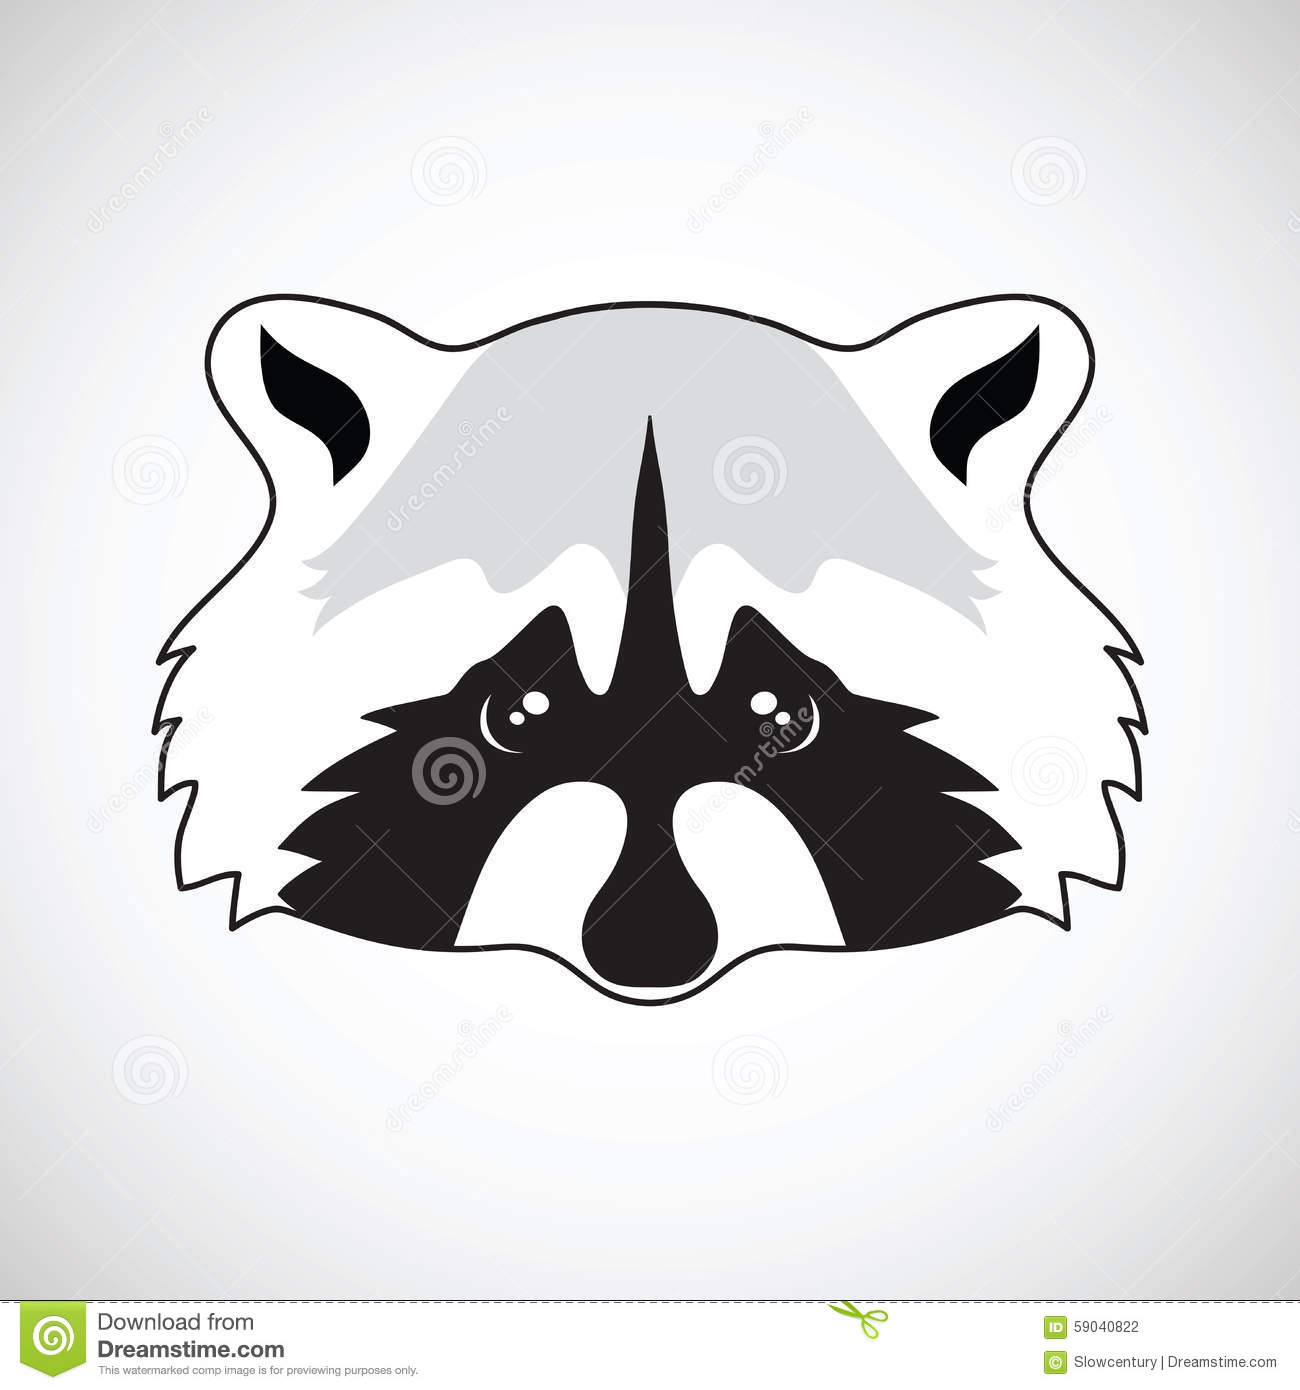 Cute Raccoon Face. Vector Illustration Stock Vector ... Raccoon Face Illustration